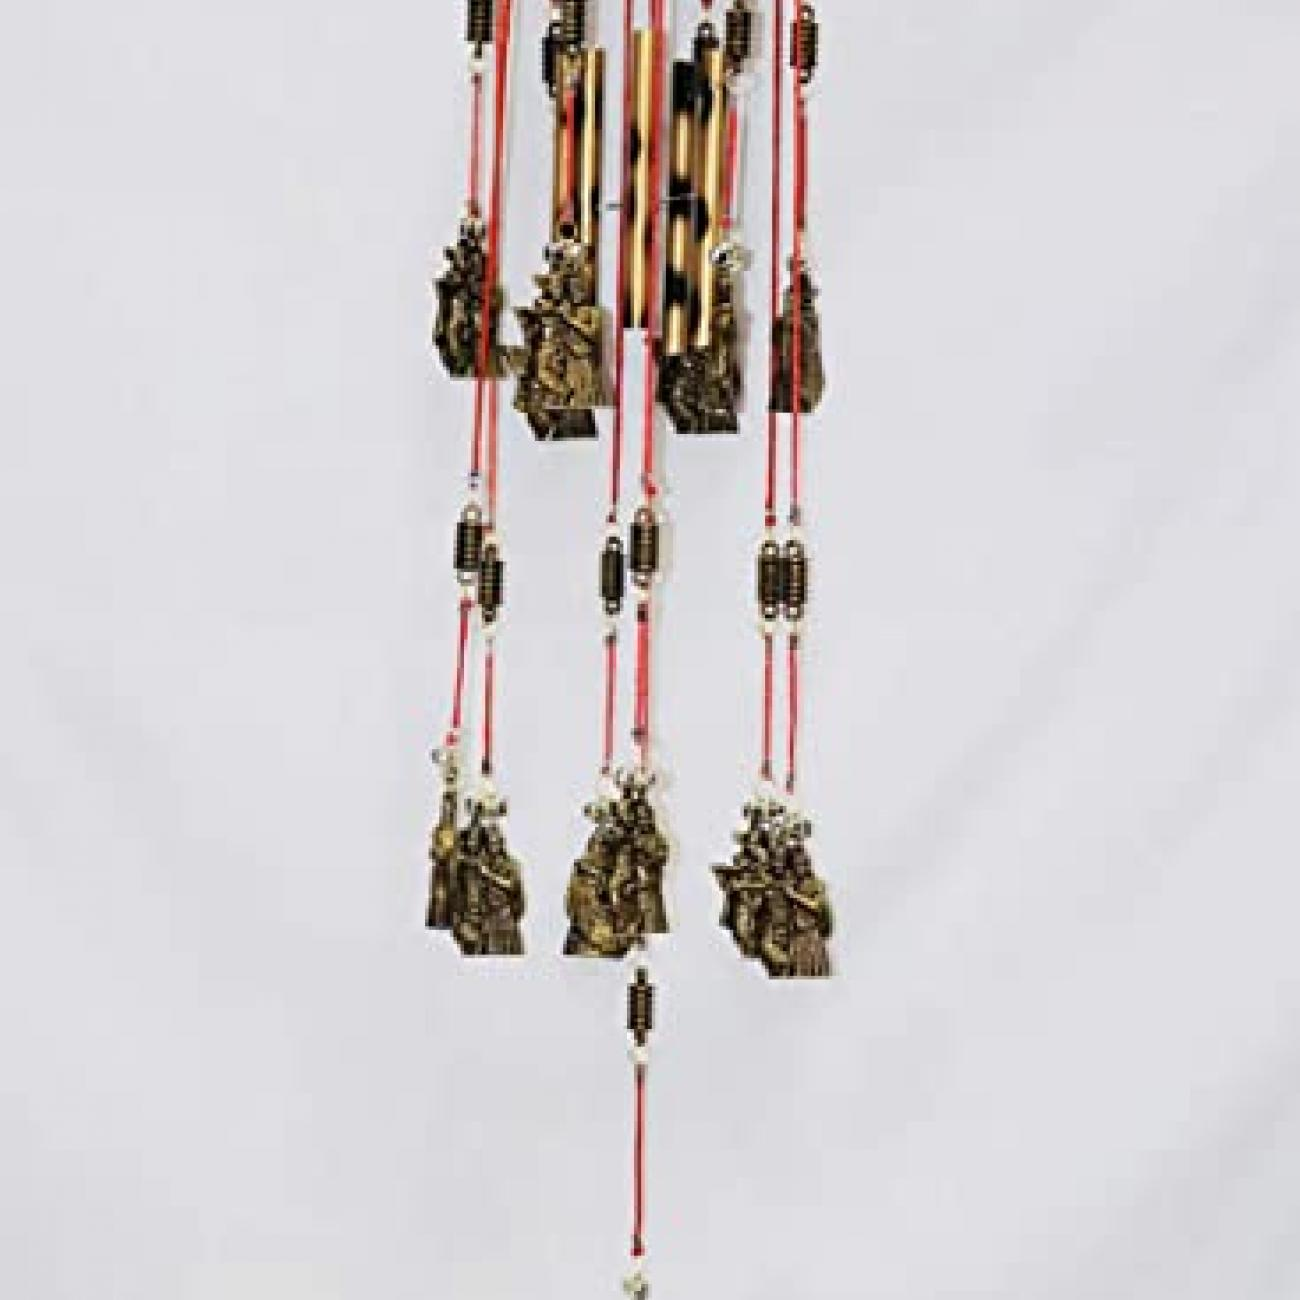 Antique Wind chimes